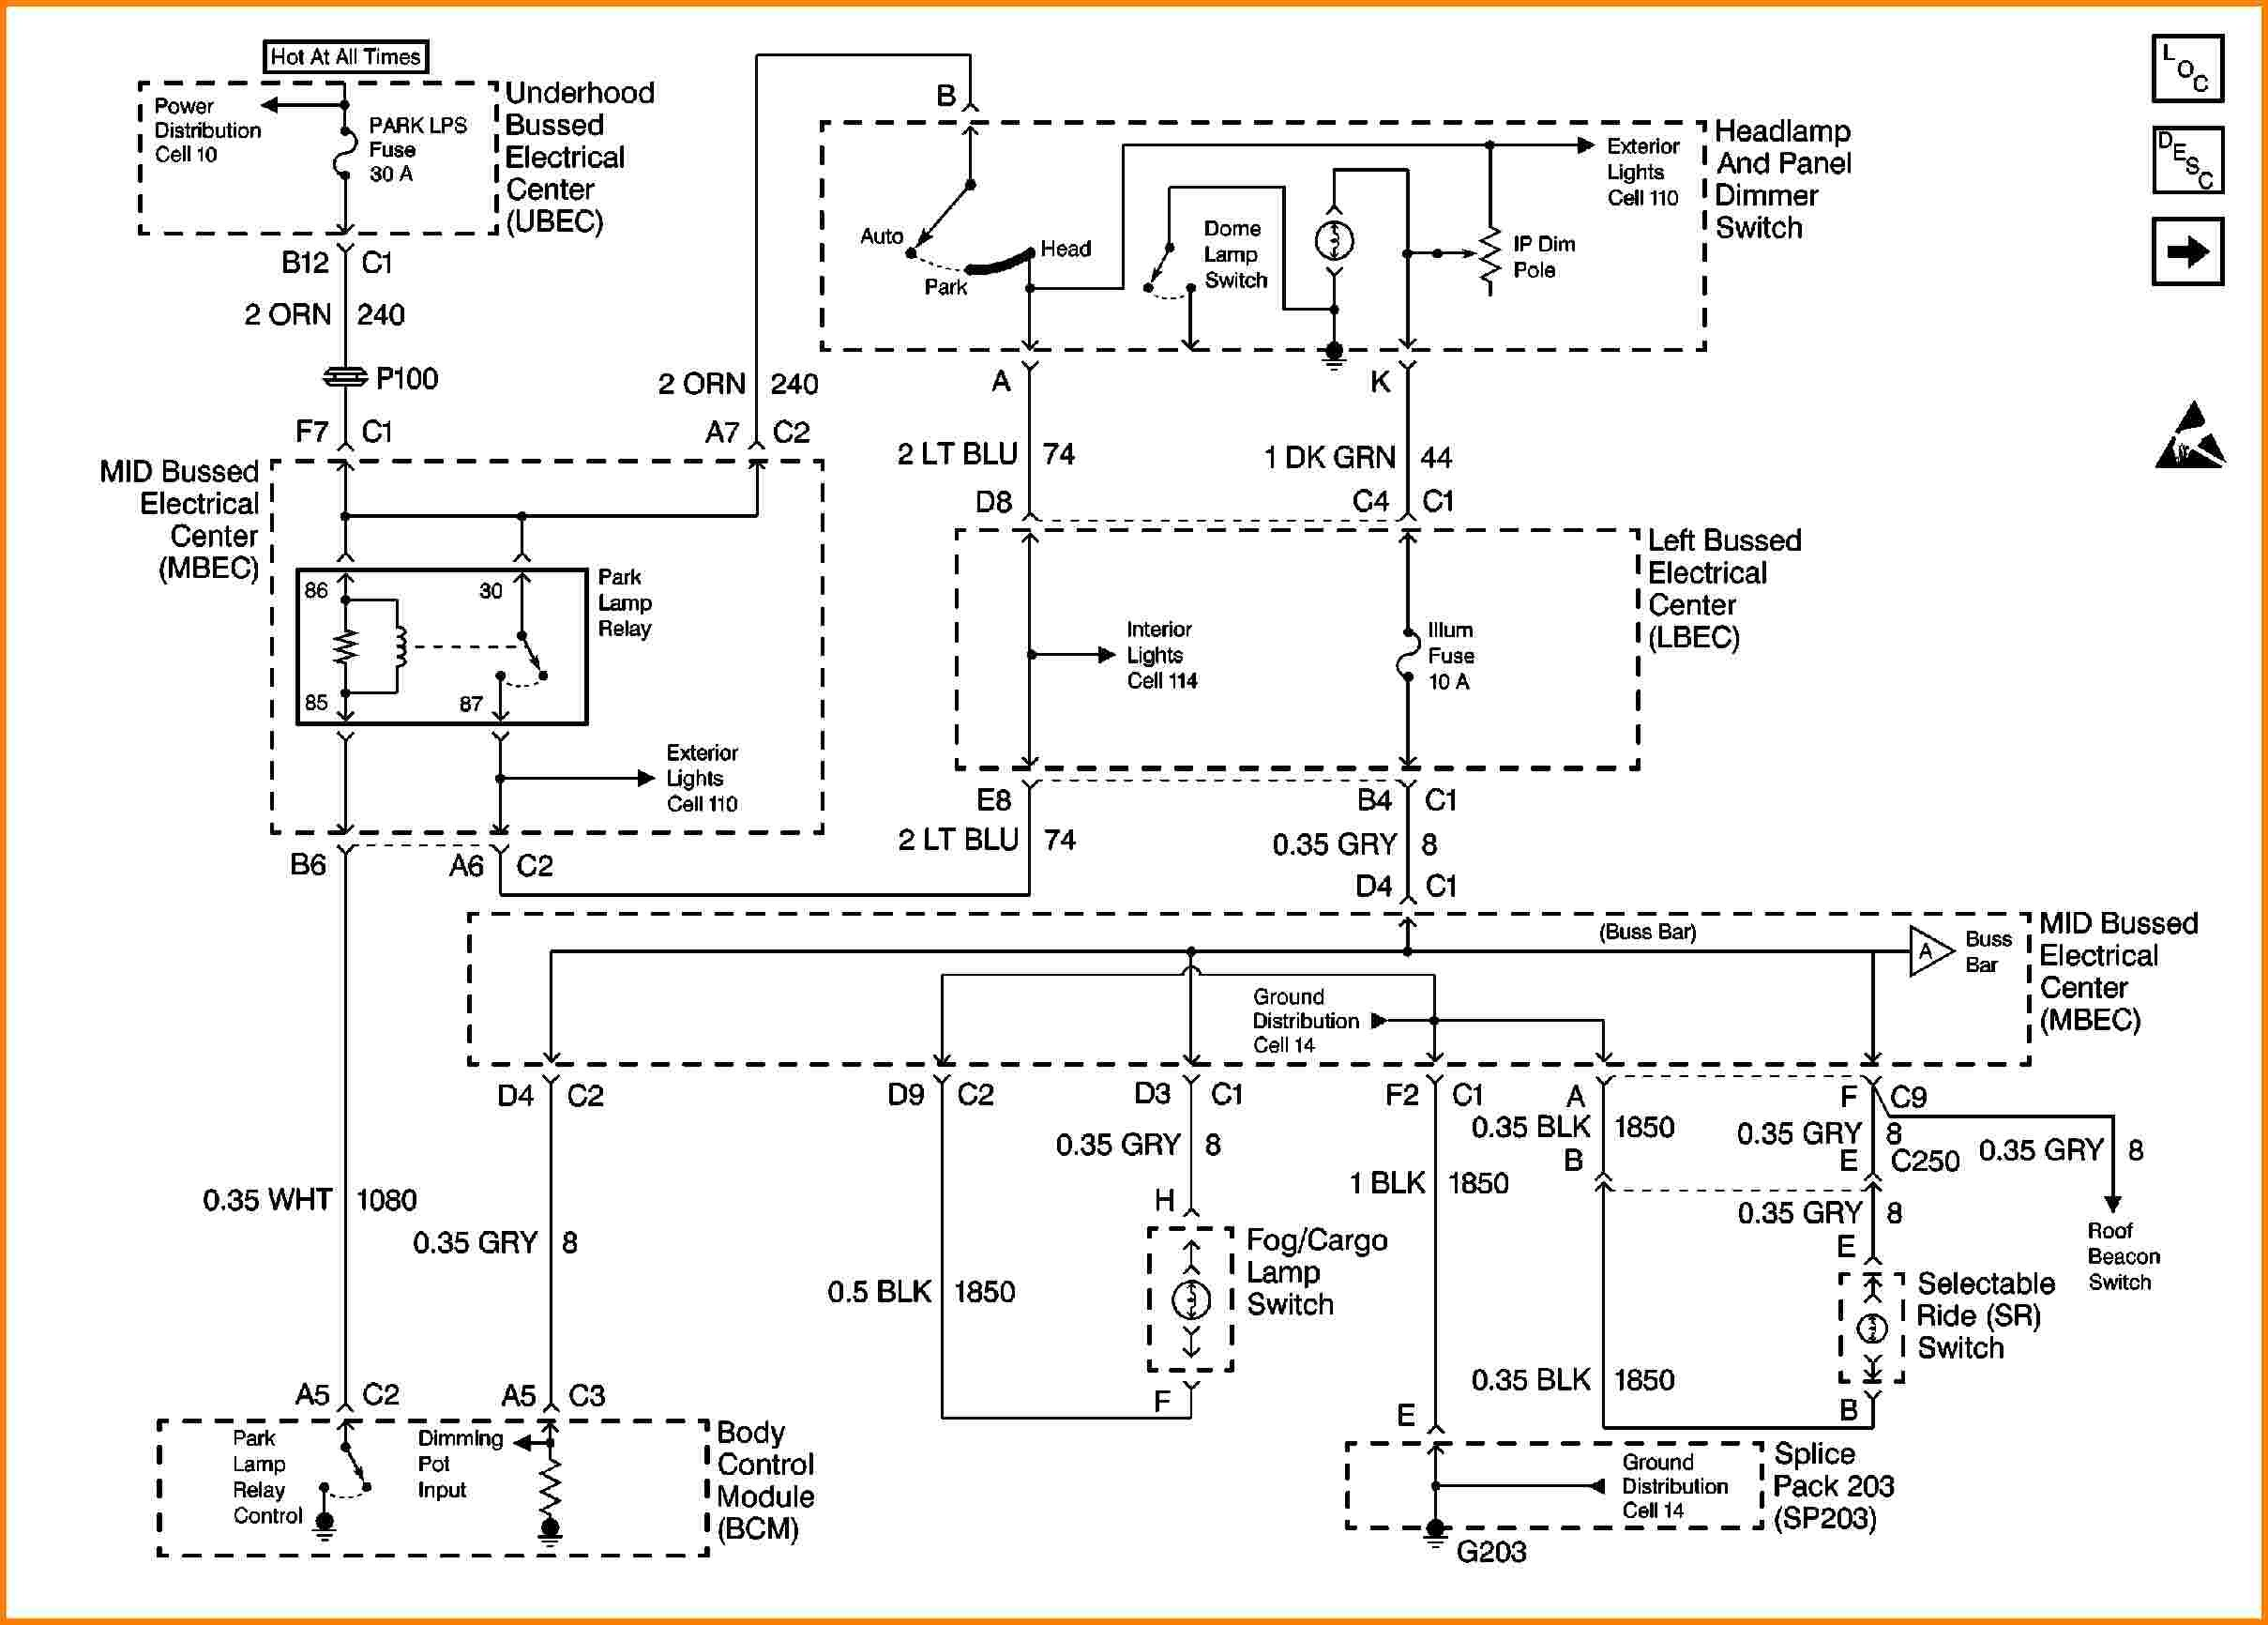 DIAGRAM] 1989 Chevy Truck Rear Wiring Diagram FULL Version HD Quality Wiring  Diagram - MAEL-DIAGRAM.RADD.FRRadd